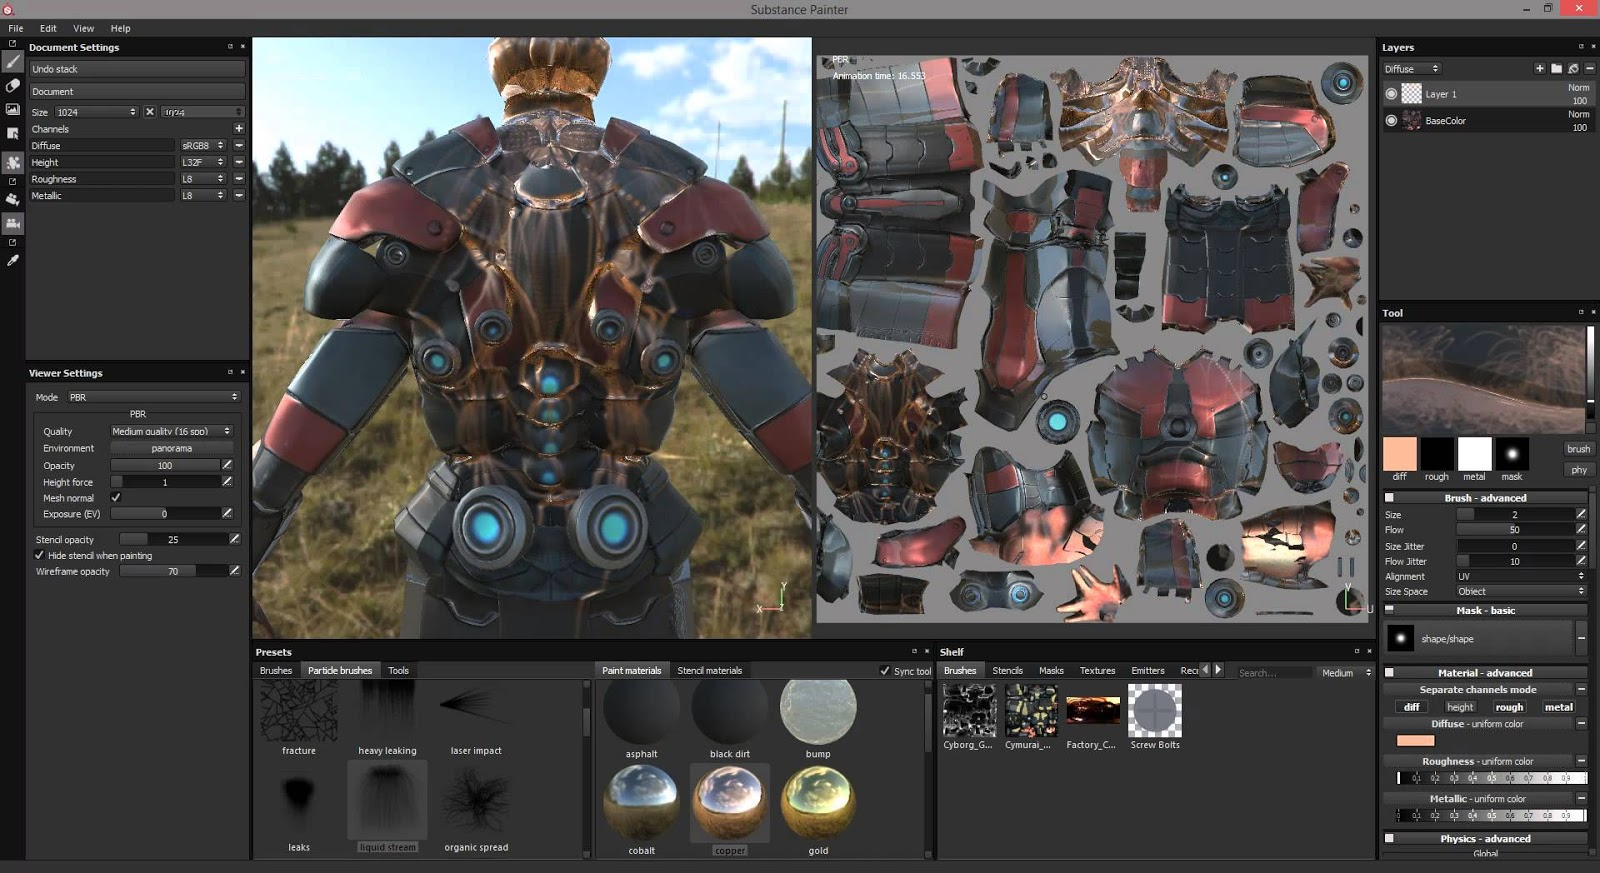 DOWNLOAD TO MAC OSX PORTABLE 2017 SUBSTANCE PAINTER 2017 4 2